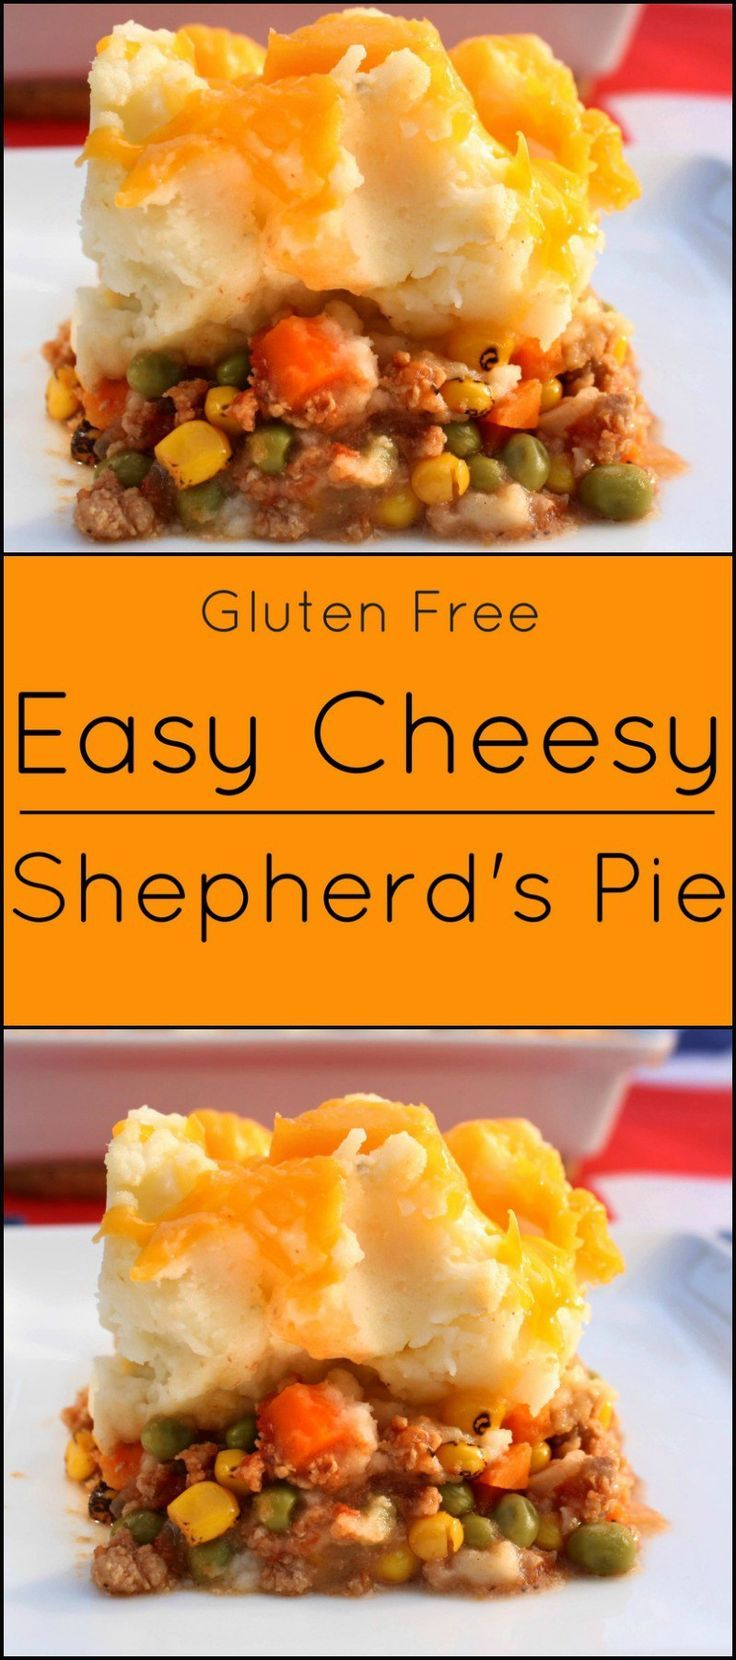 Easy cheesy shepherds pie is a traditional british dish easy cheesy shepherds pie is a traditional british dish substitute ground forumfinder Image collections